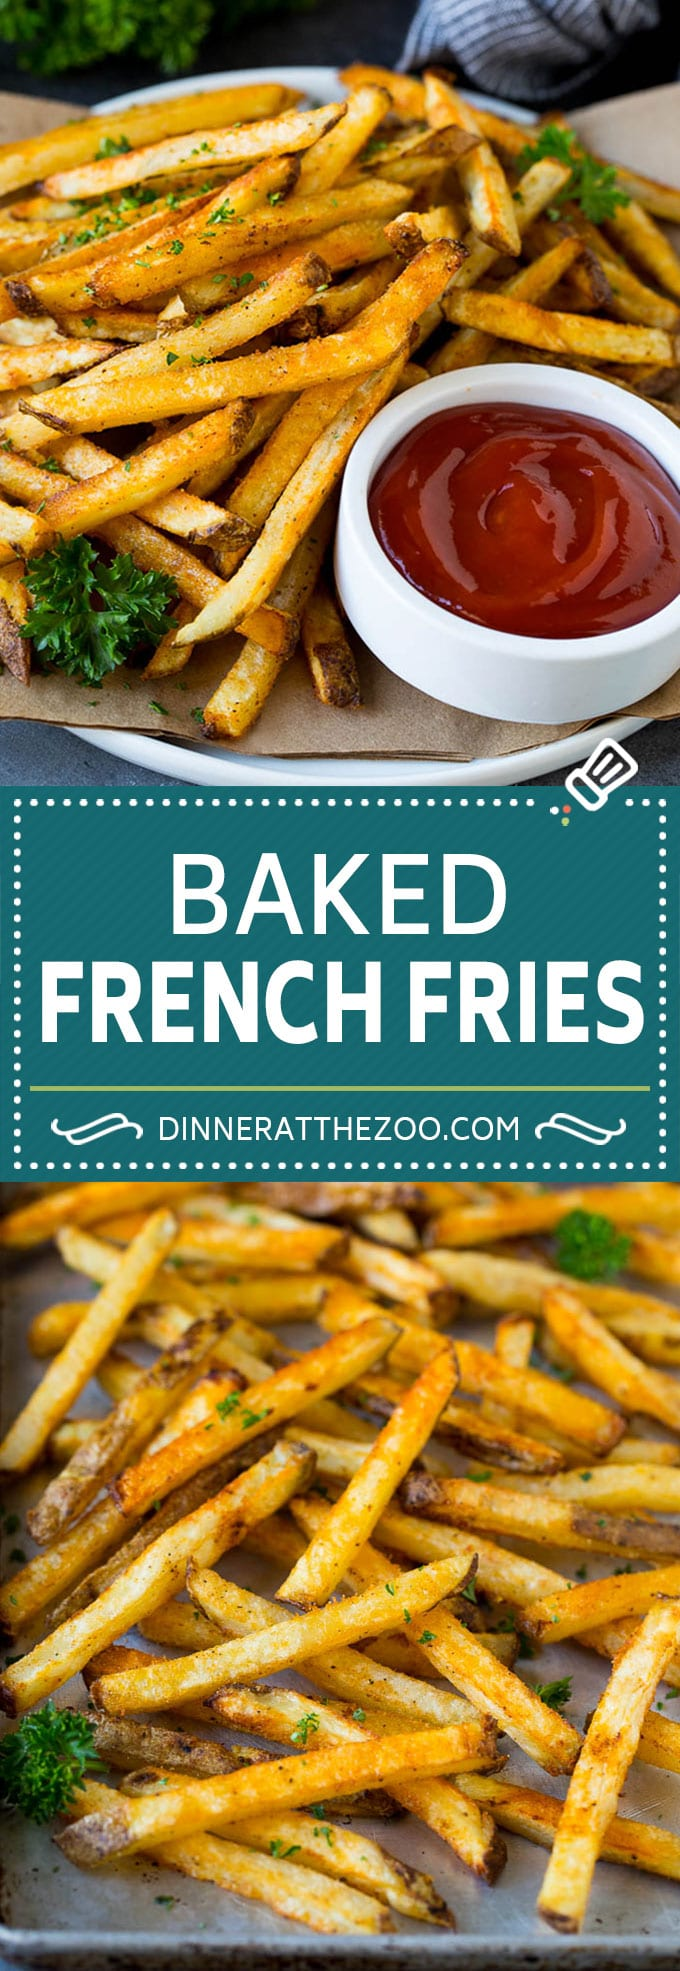 Baked French Fries Recipe #potatoes #fries #dinner #dinneratthezoo